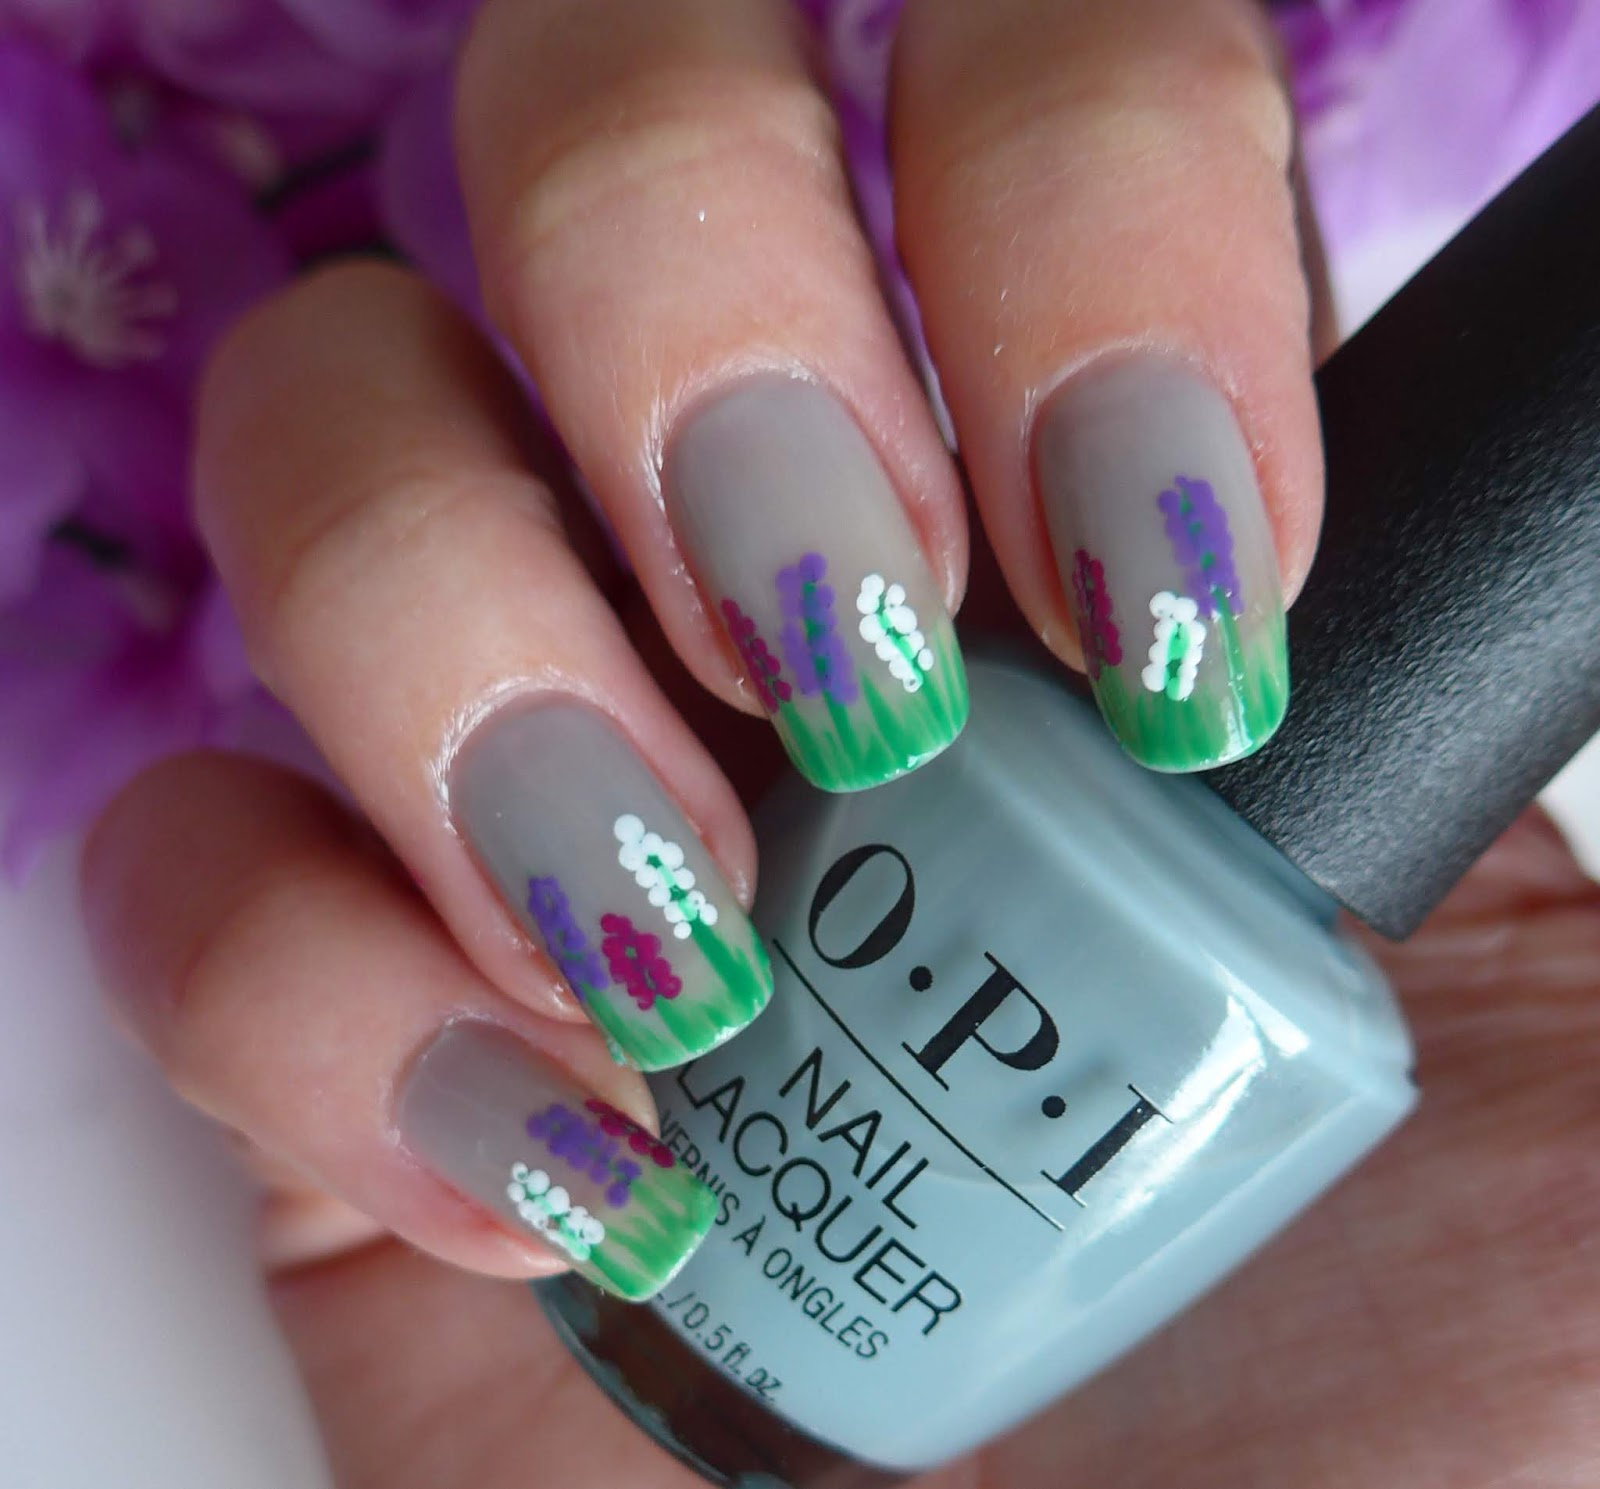 Manicure Monday - Hyacinth Flower Garden Nail Art